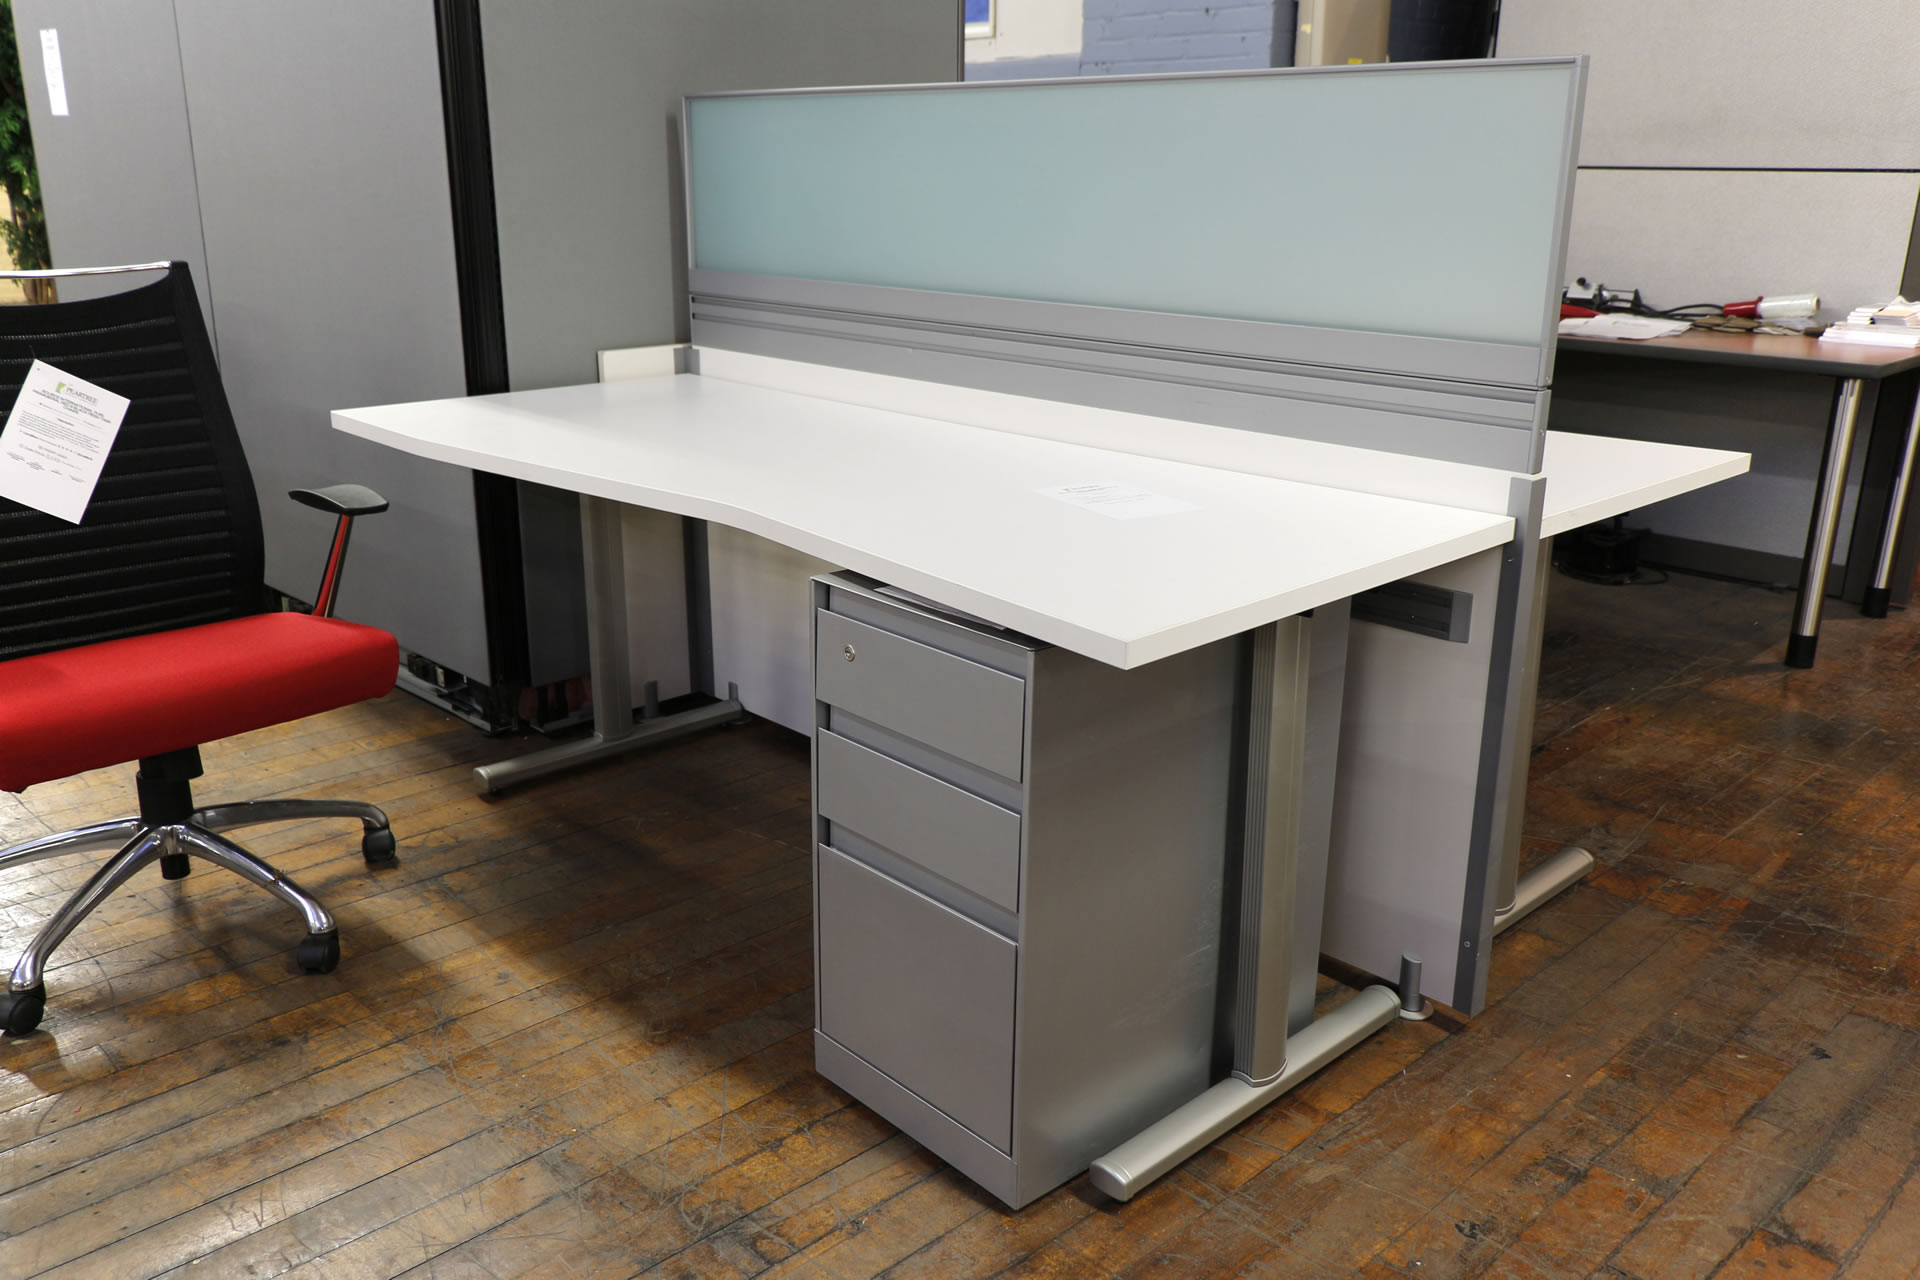 peartreeofficefurniture_peartreeofficefurniture_mg_4943.jpg